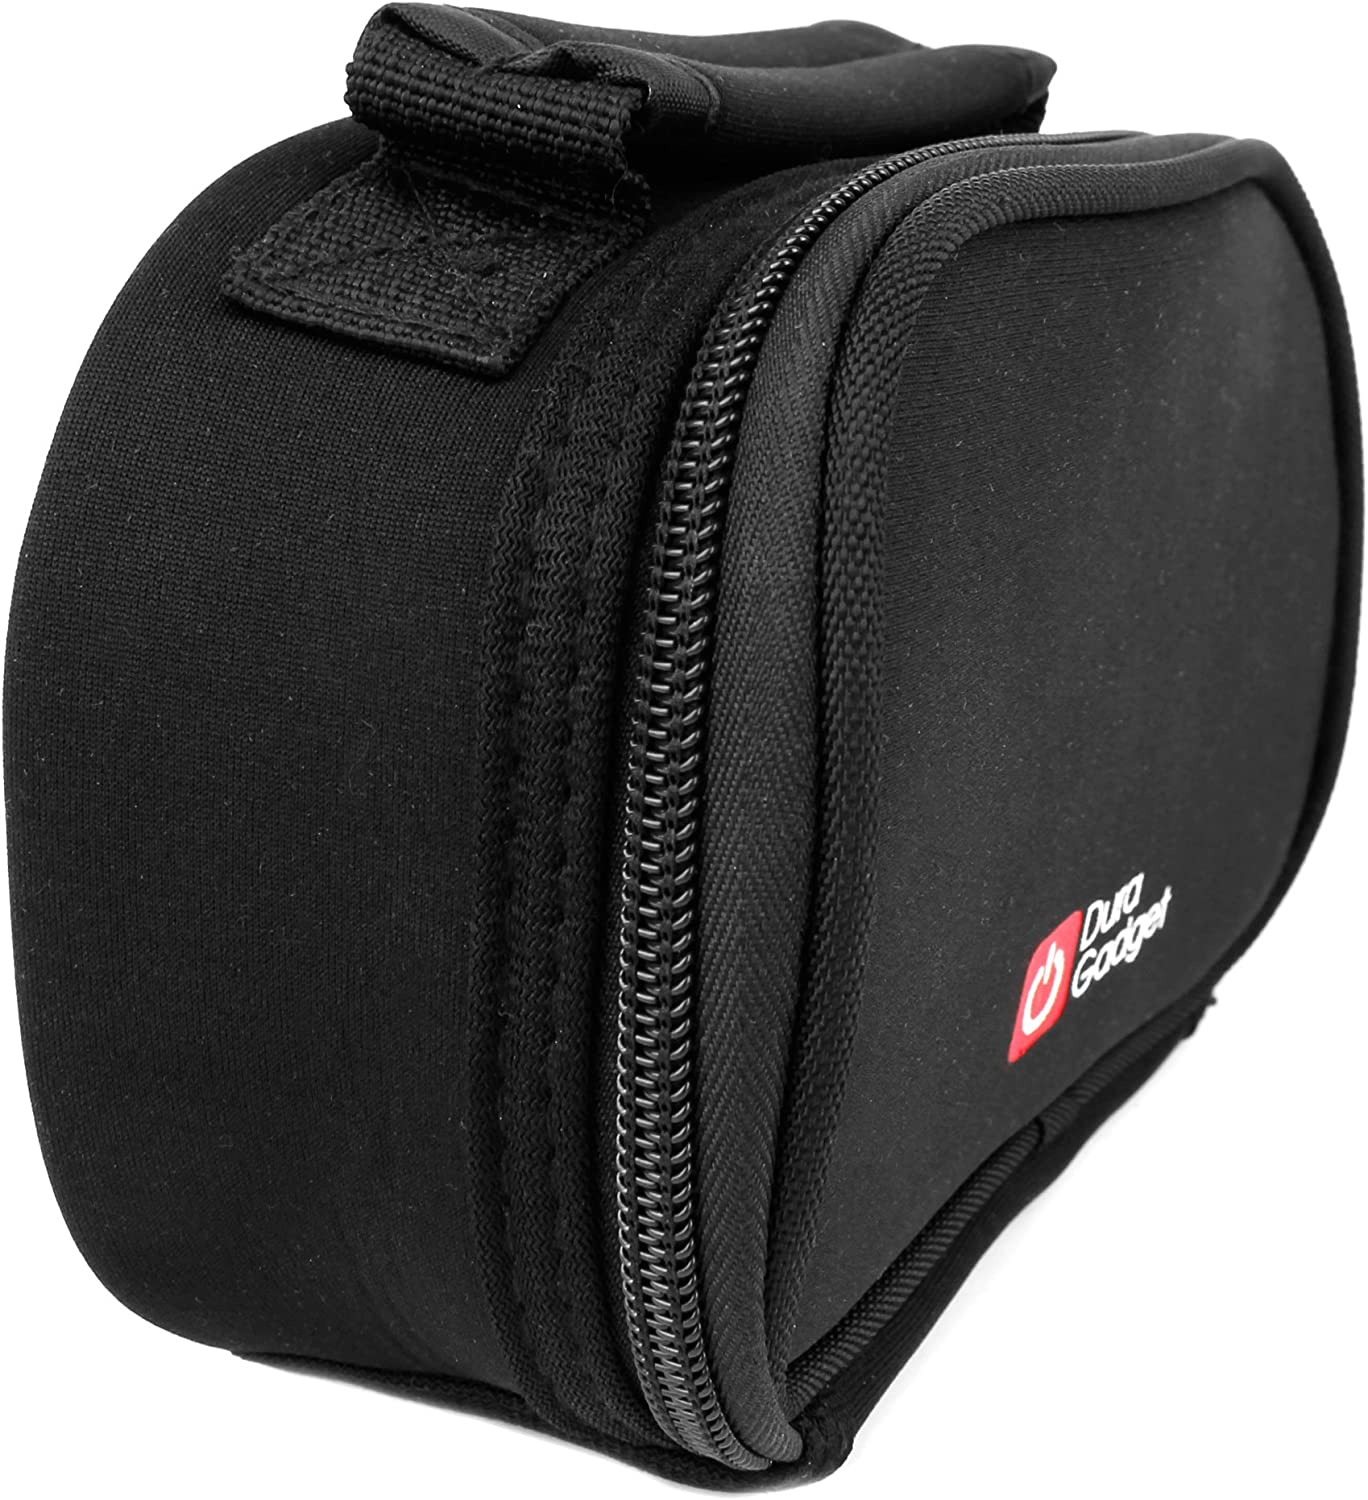 GoXtreme Nano Compatible with EasyPix GoXtreme Race GoXtreme Deep Sea /& Xtasy GoXtreme WiFi GoXtreme Race Full HD DURAGADGET Durable Black Padded Case w//Handle